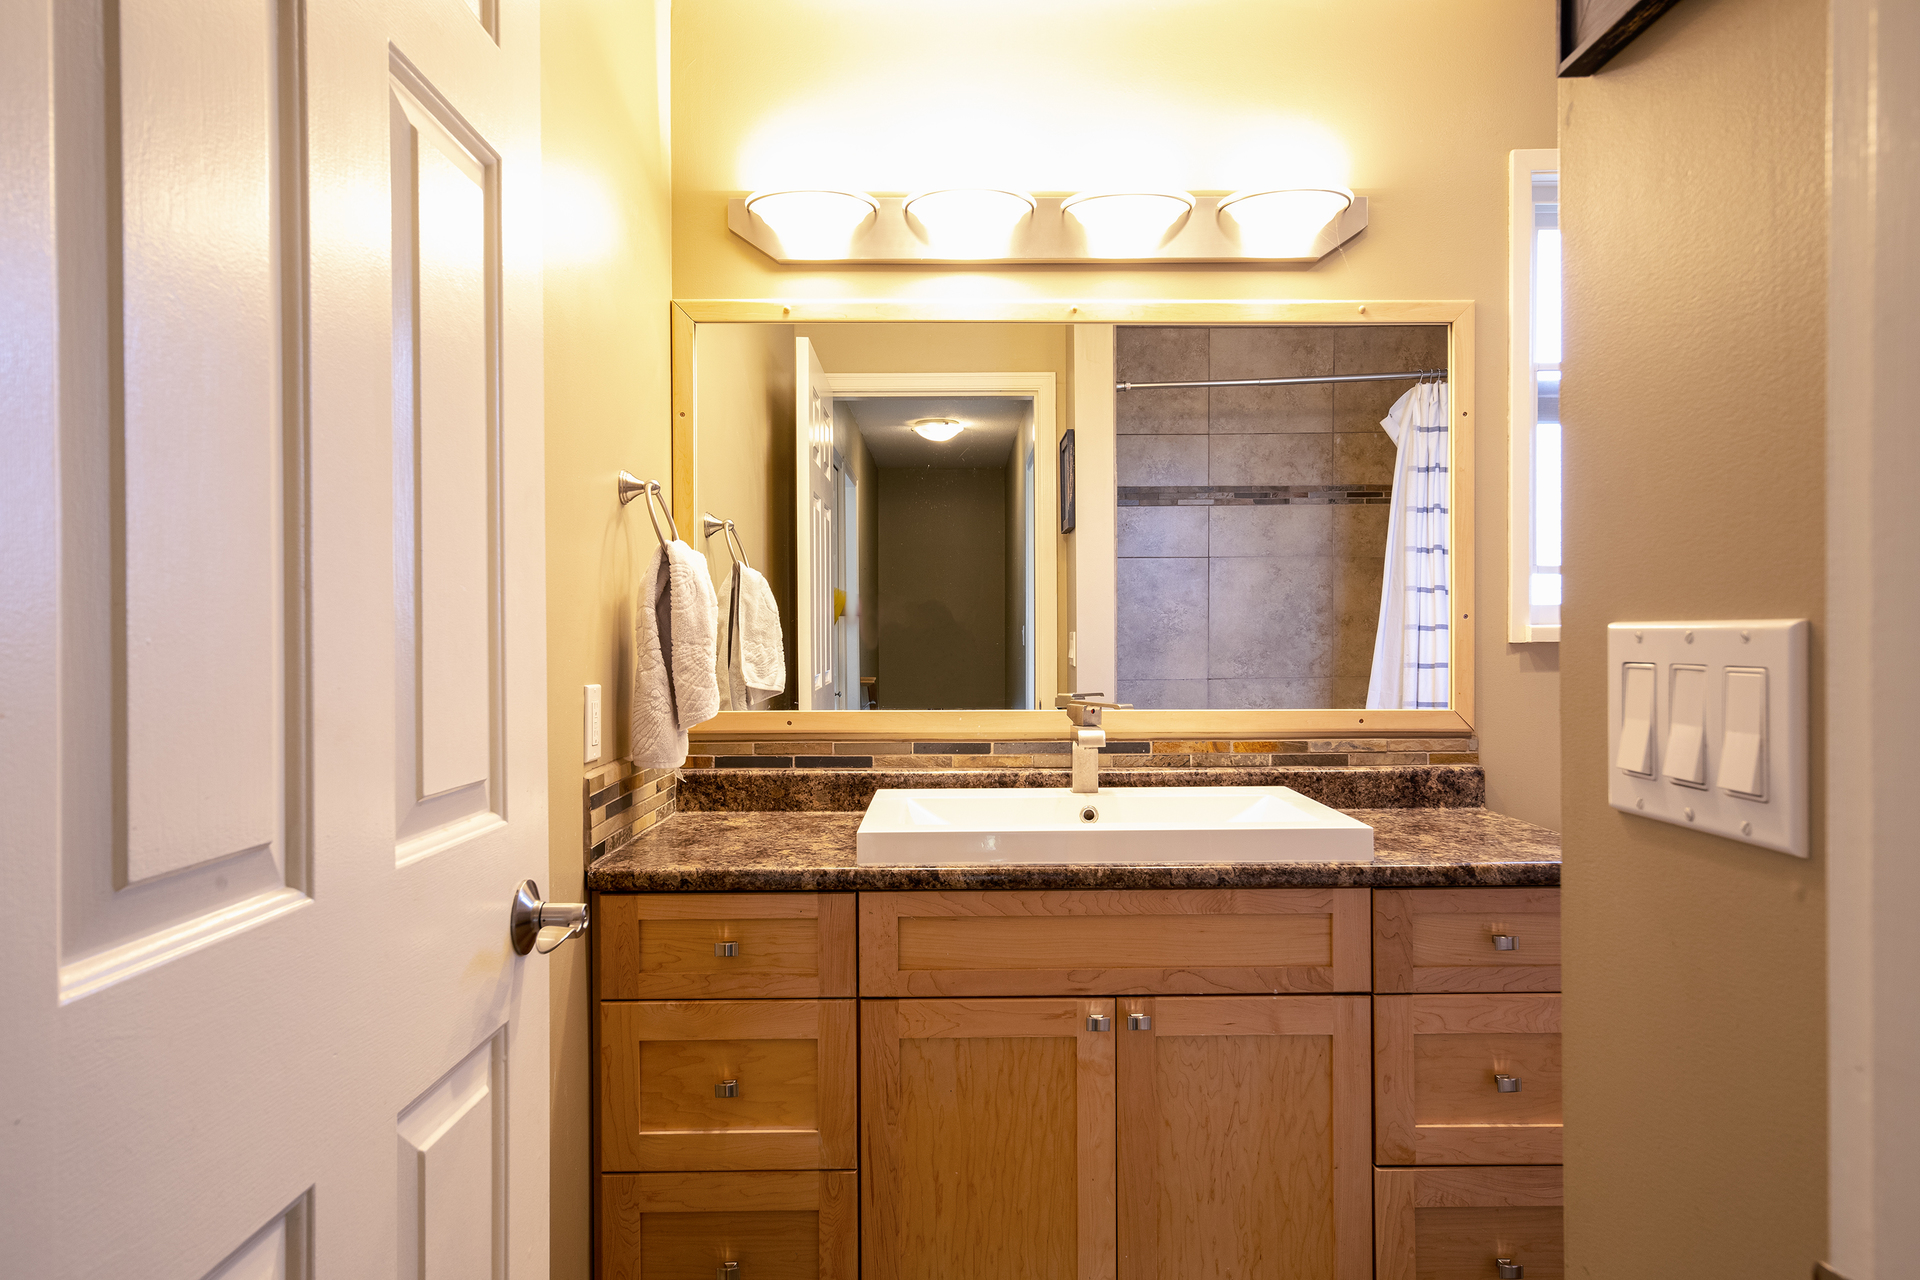 bathroom_001 at 20416 90 Crescent, Walnut Grove, Langley